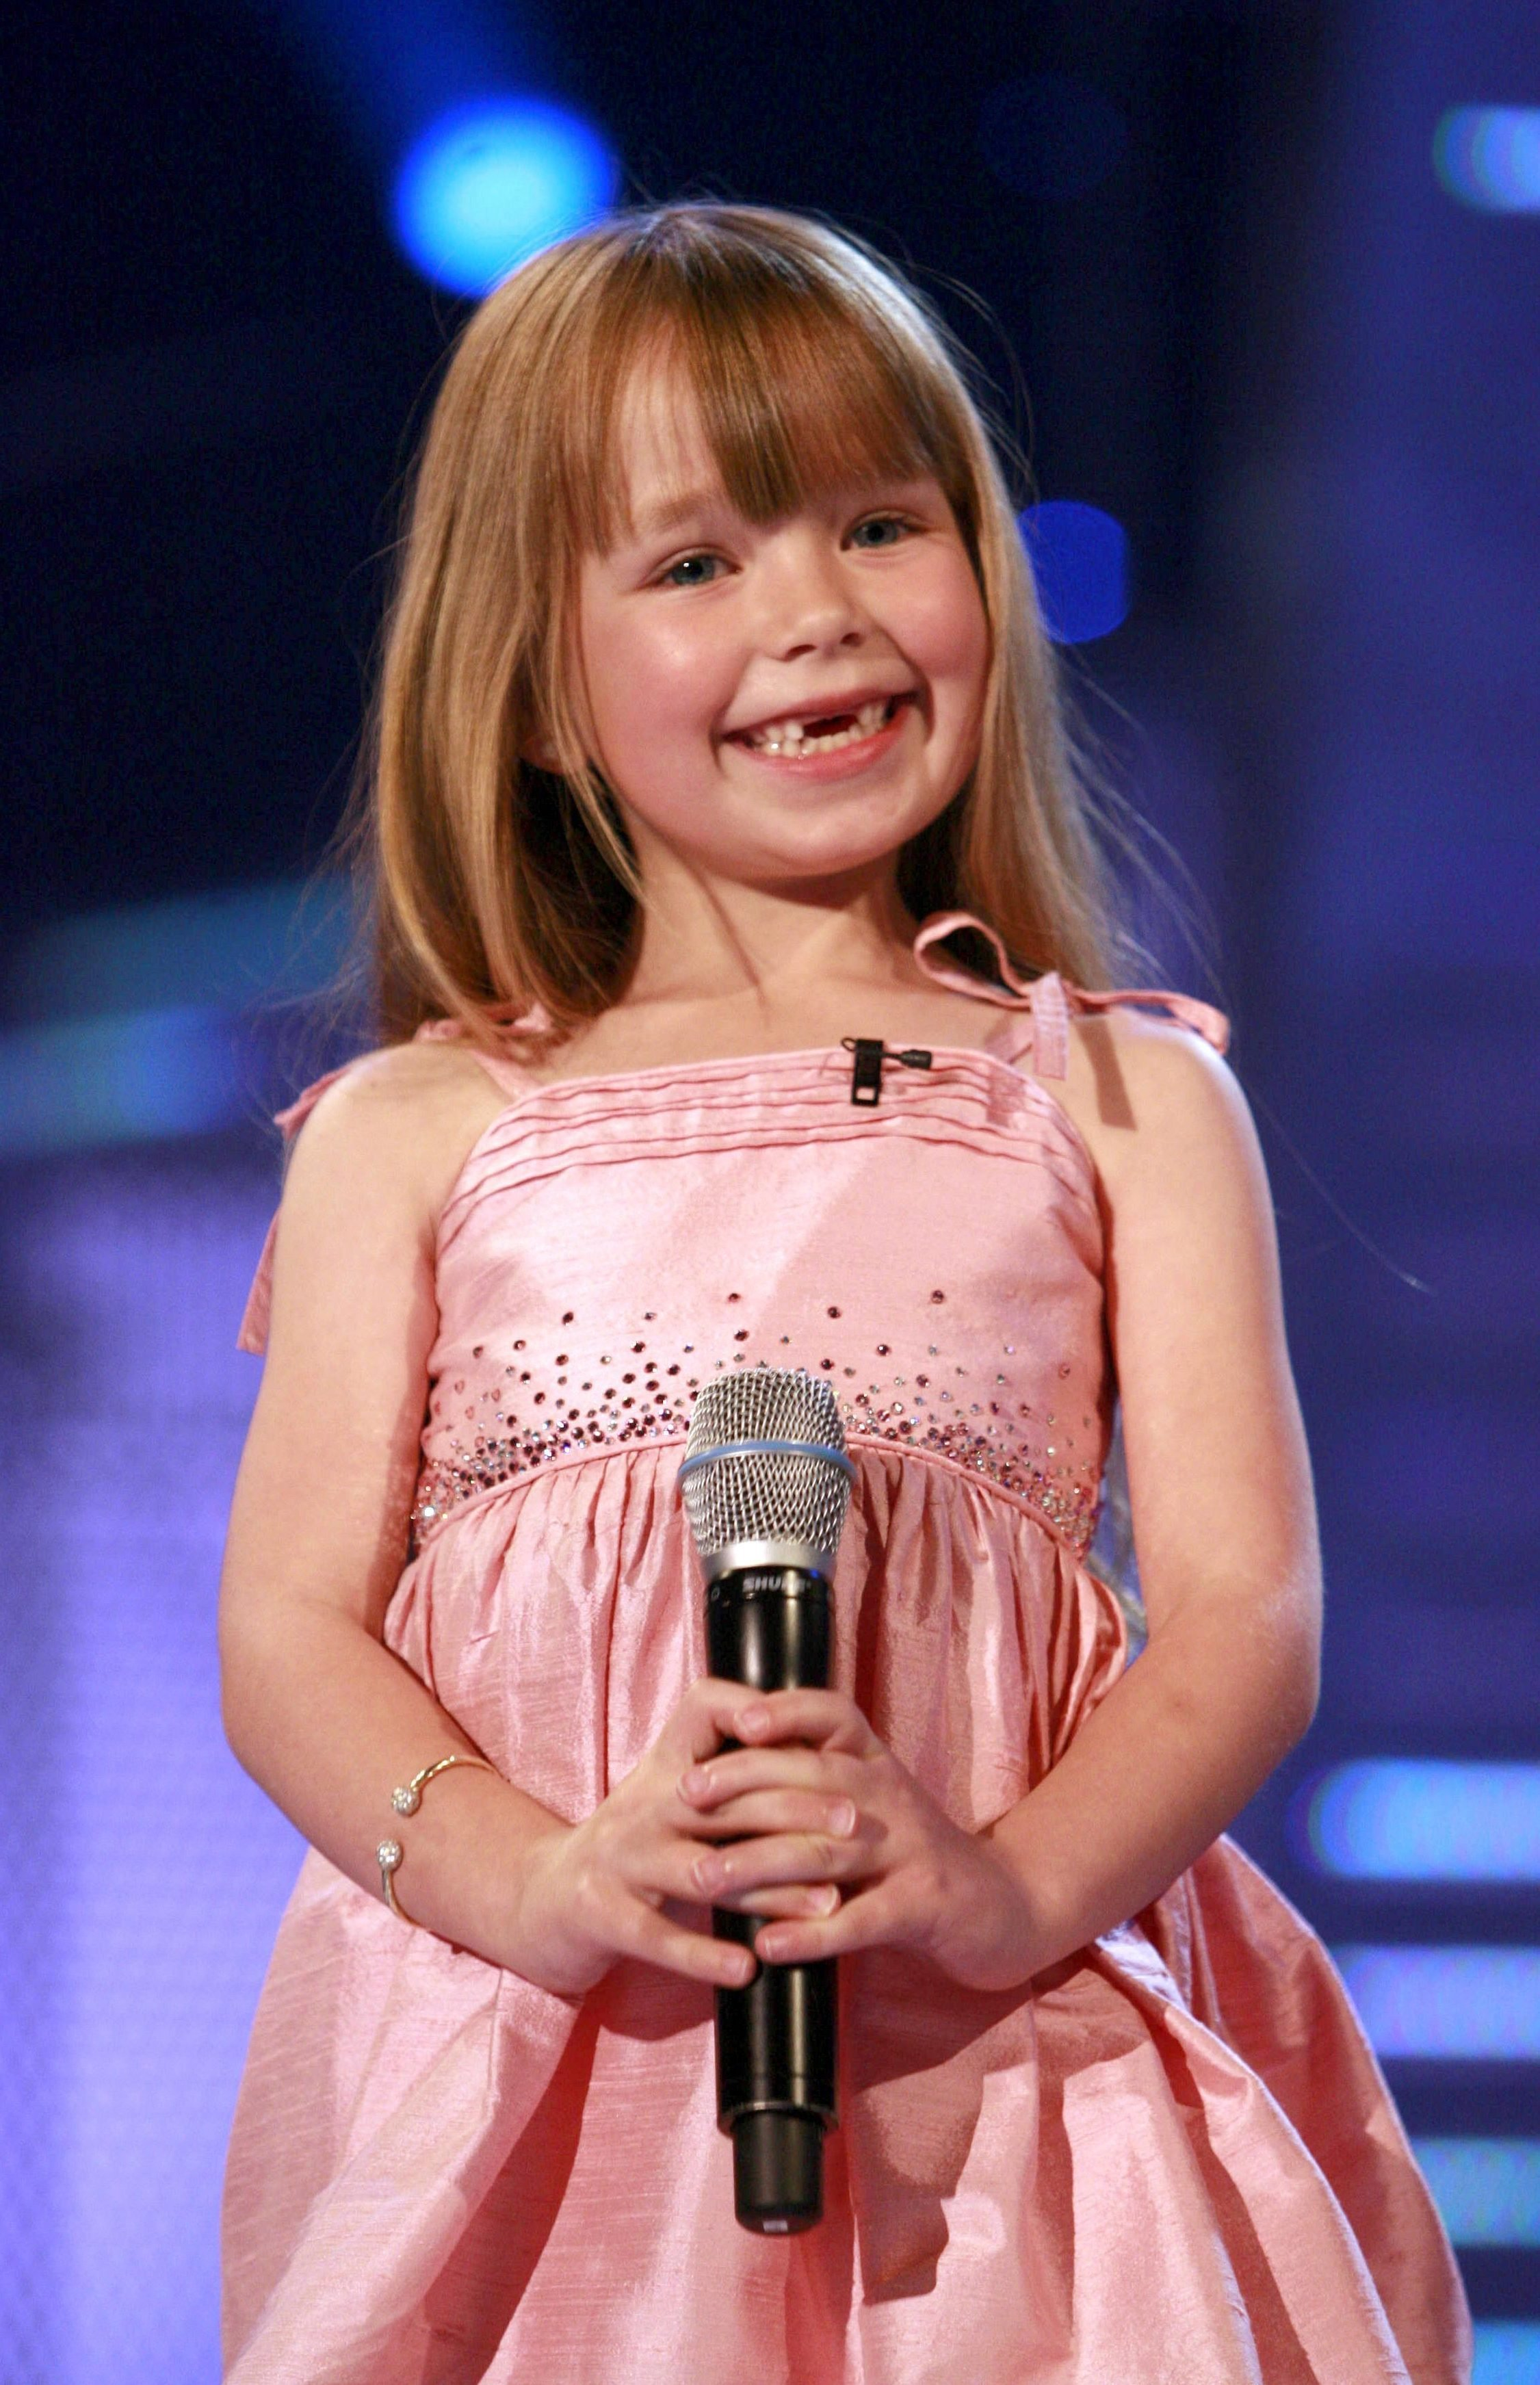 Connie wowed Simon Cowell en route to the BGT final in 2007